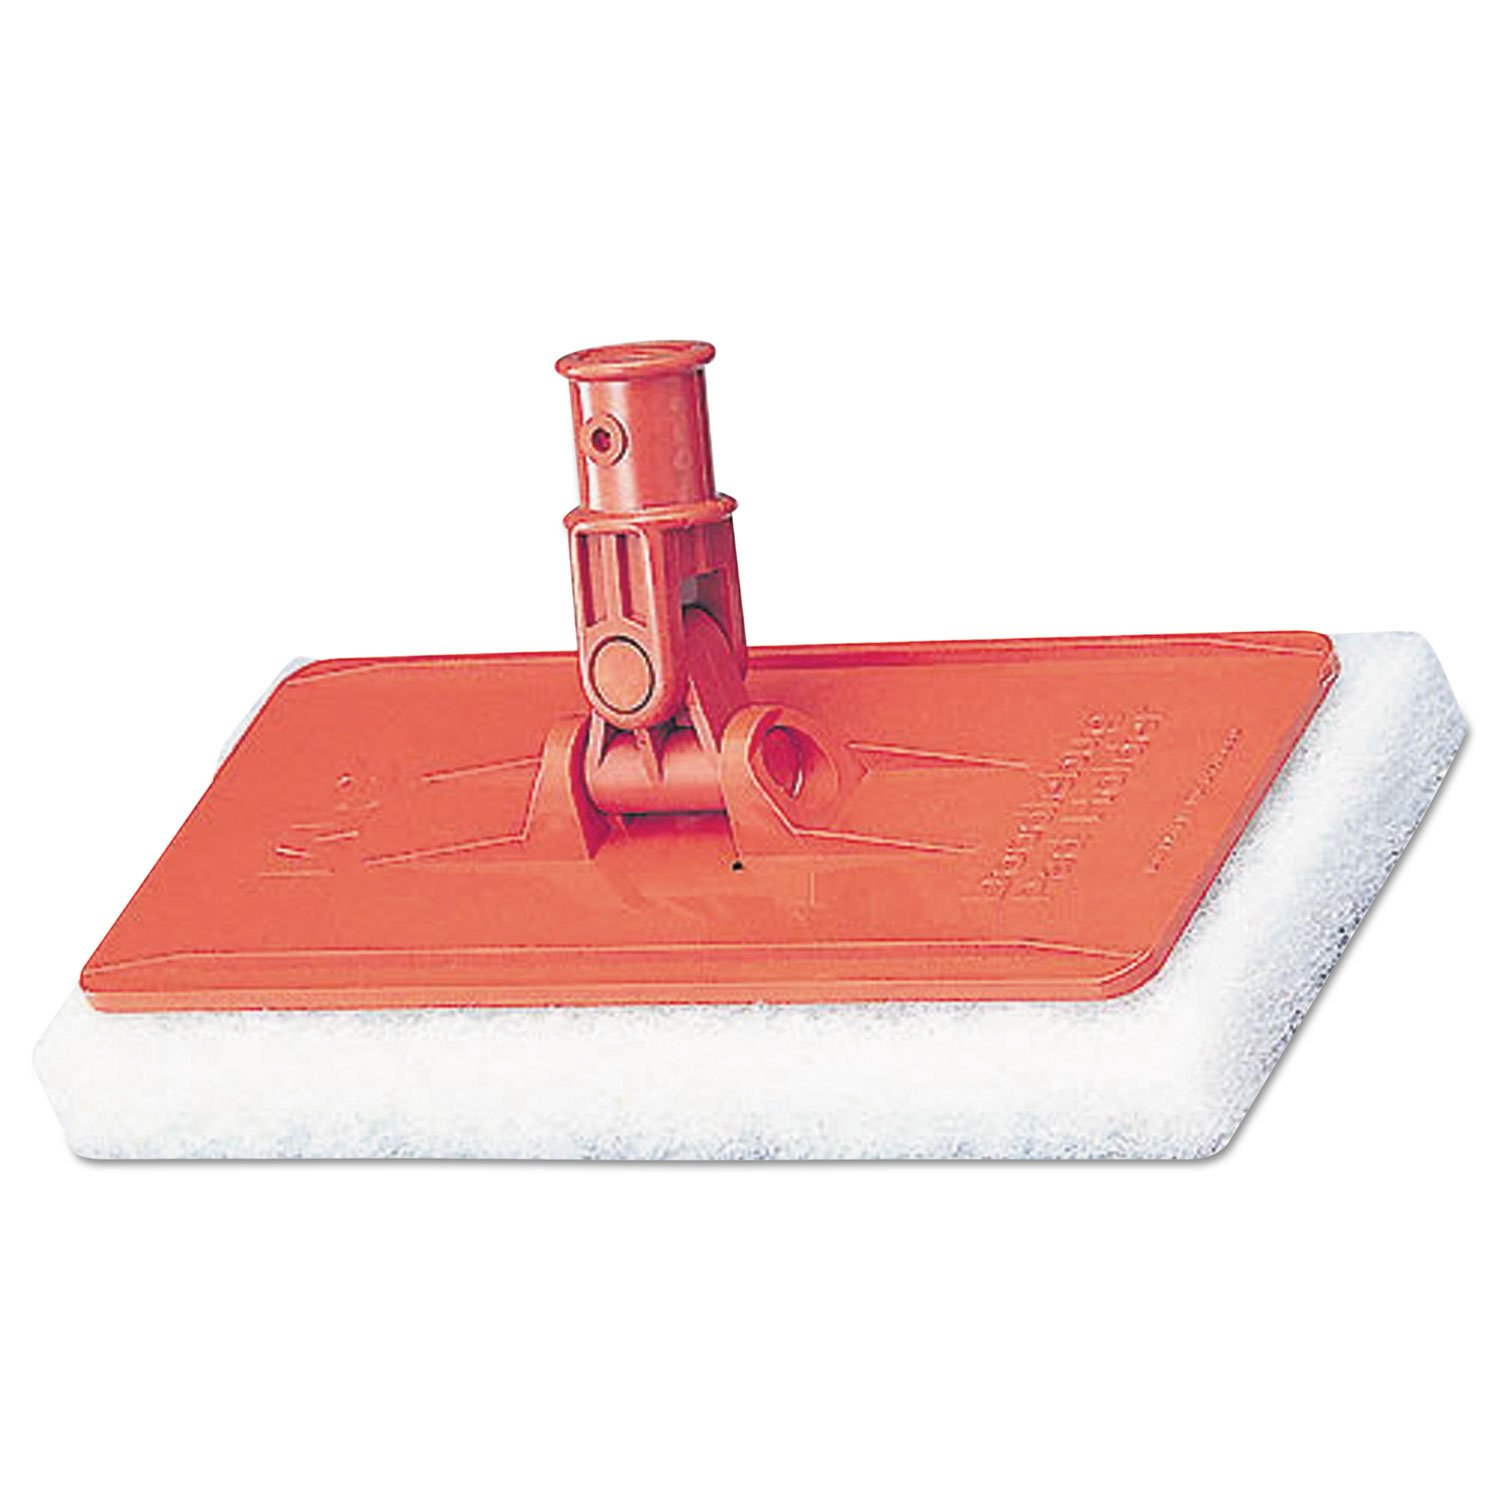 3M 6472 Doodlebug Pad Holder Kit Orange